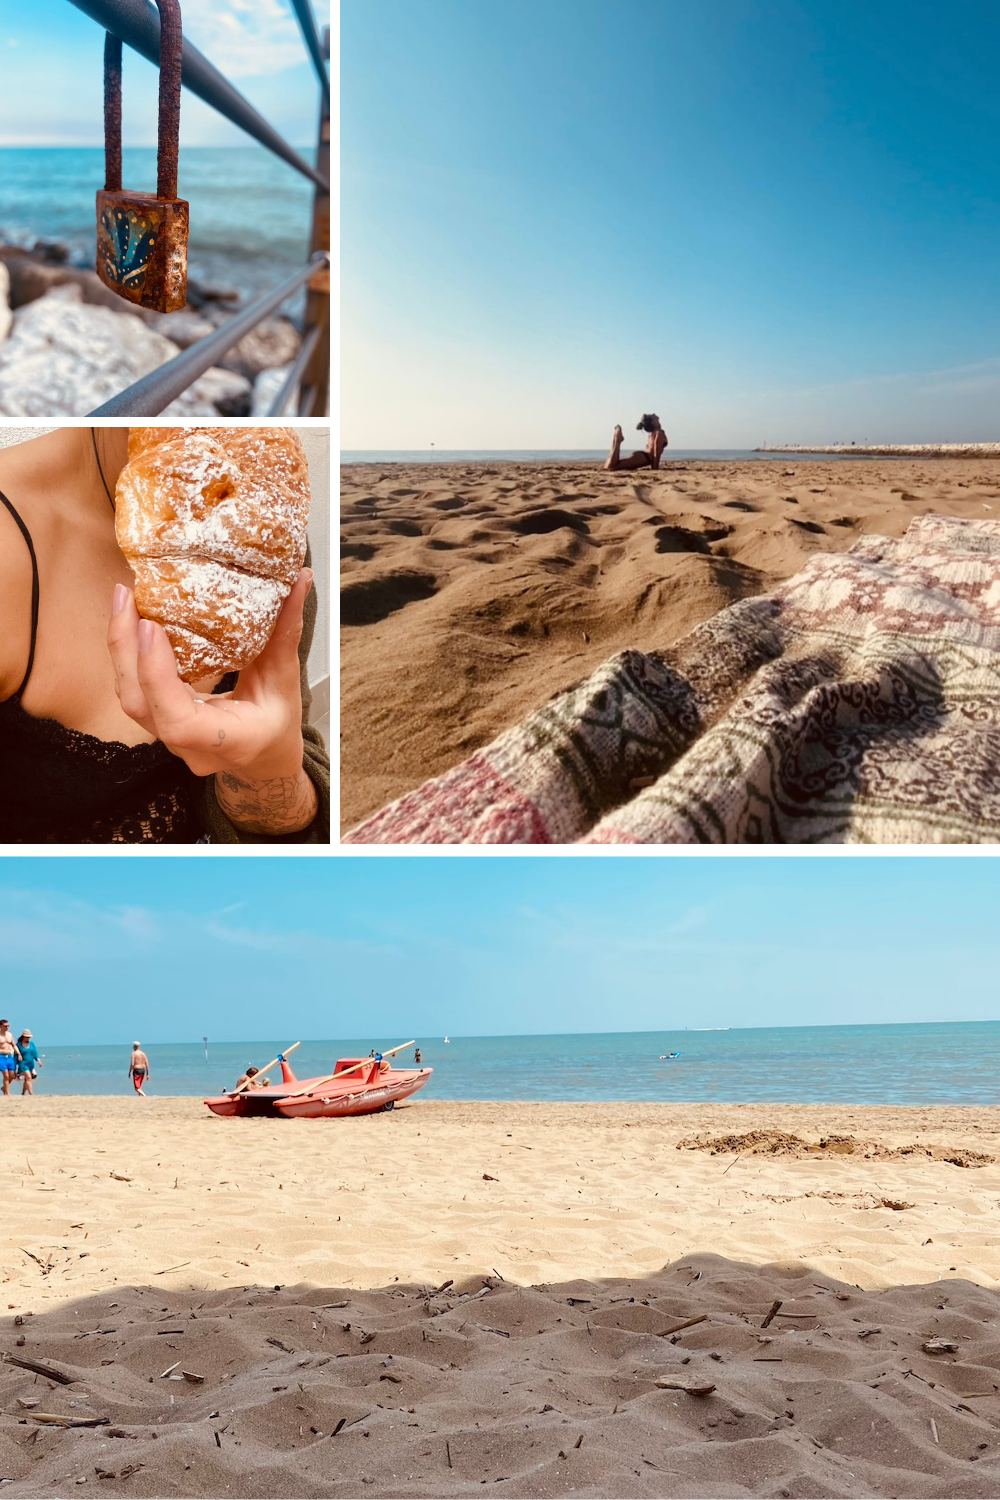 Things to do in Caorle